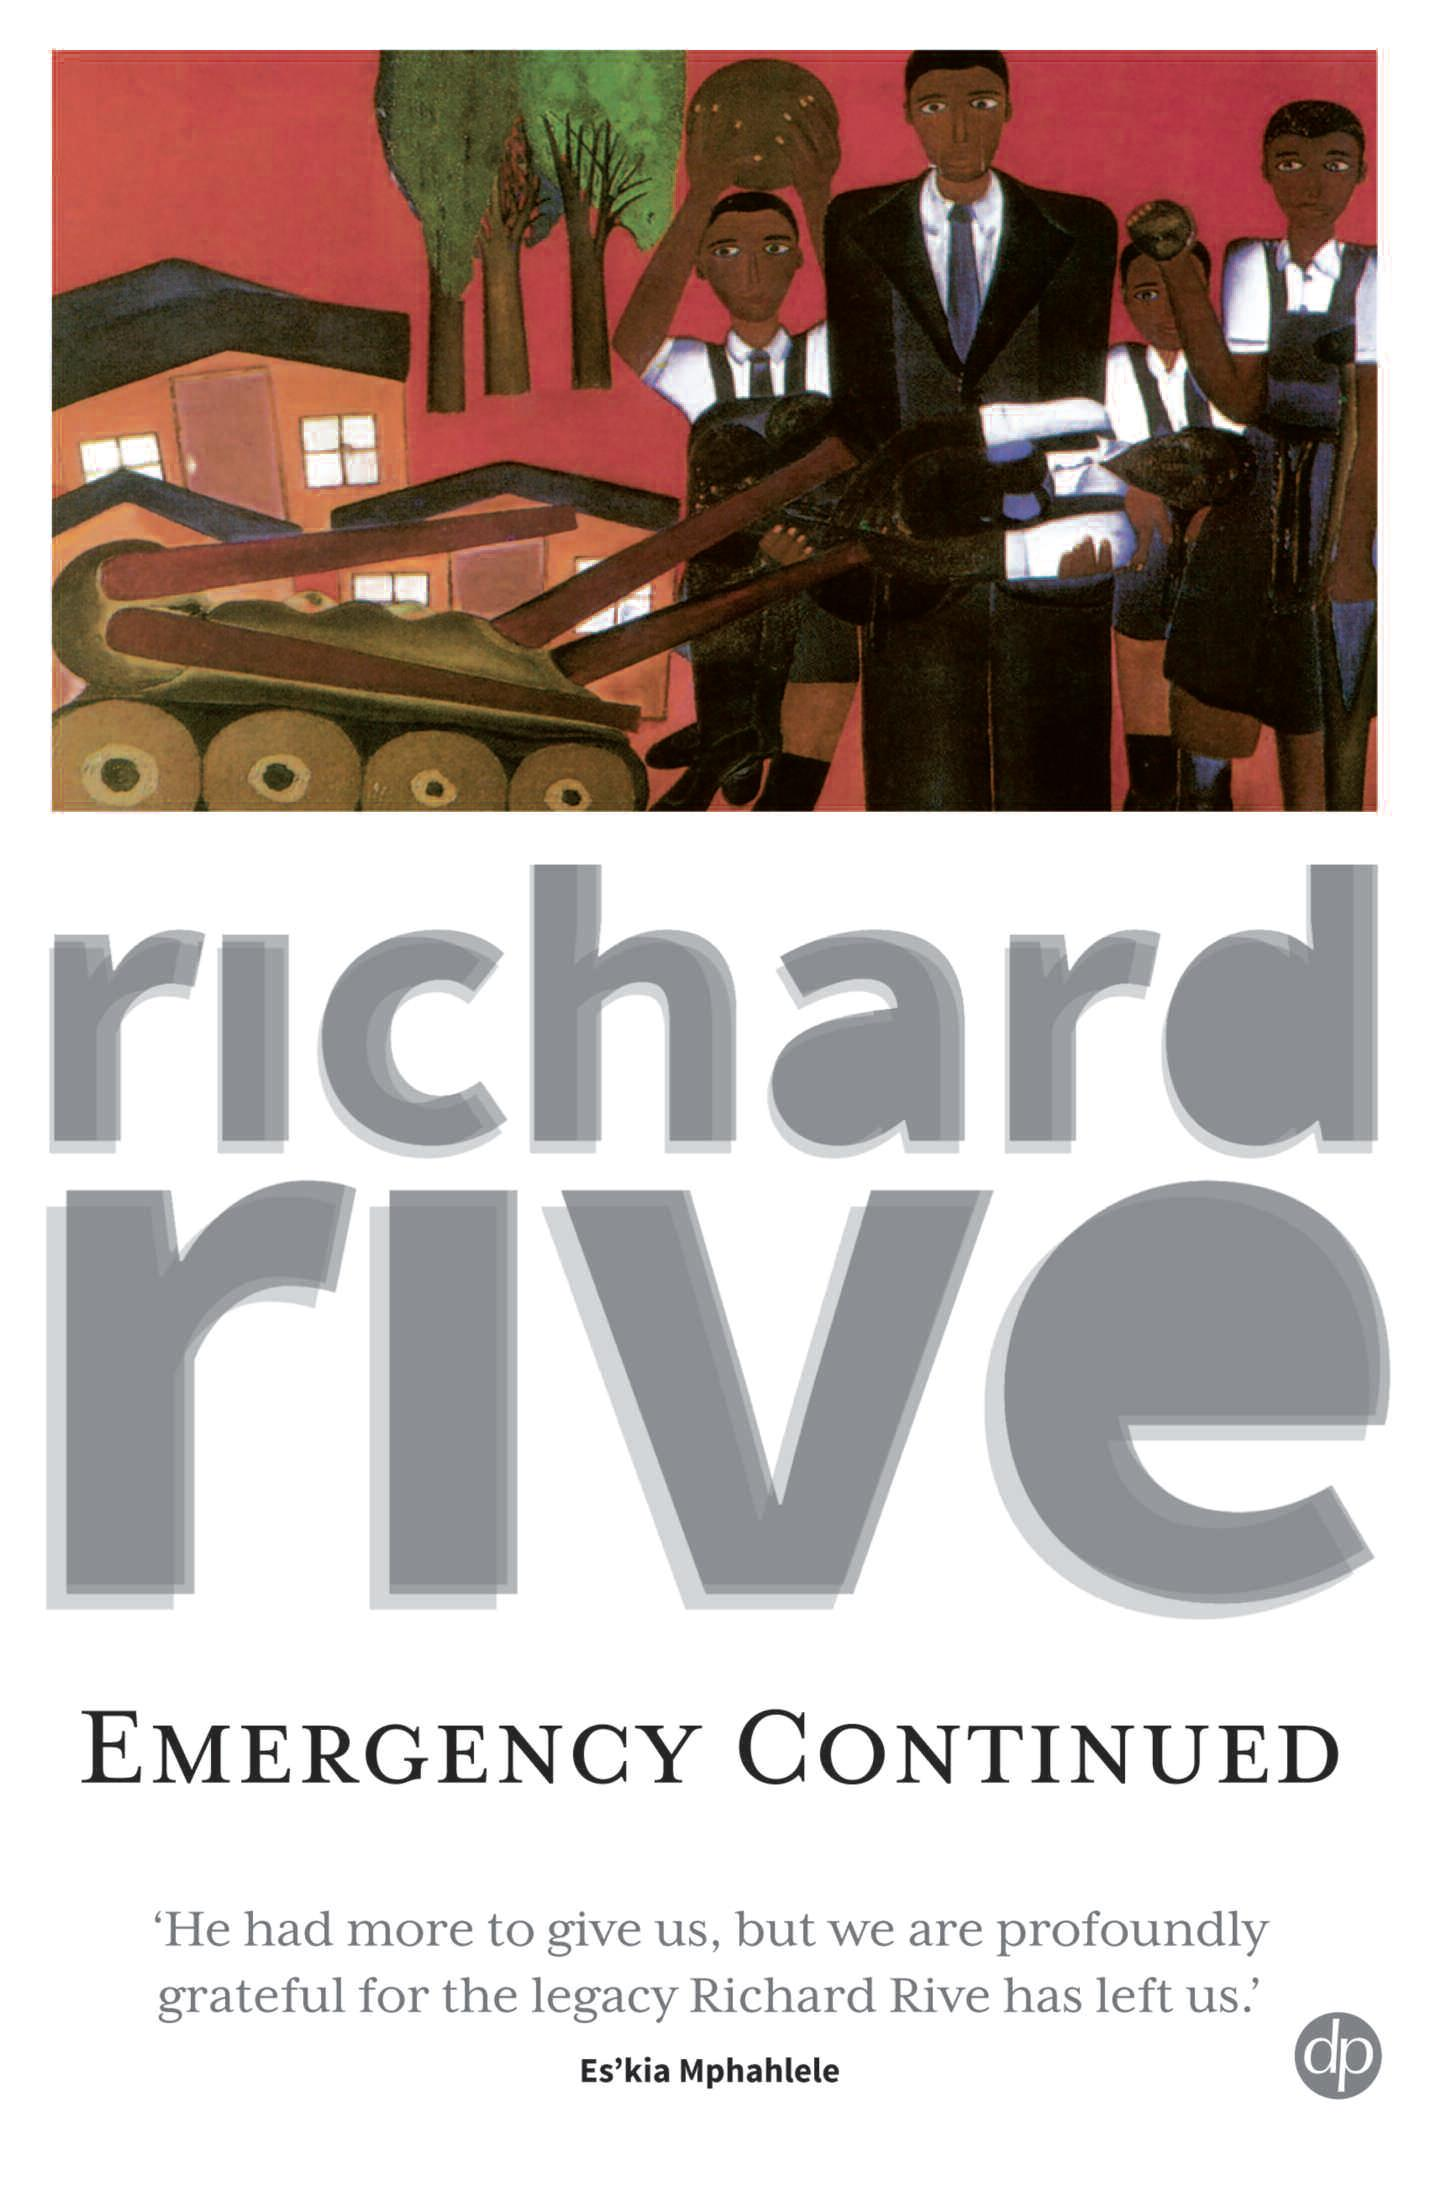 Emergency Continued - Richard Rive